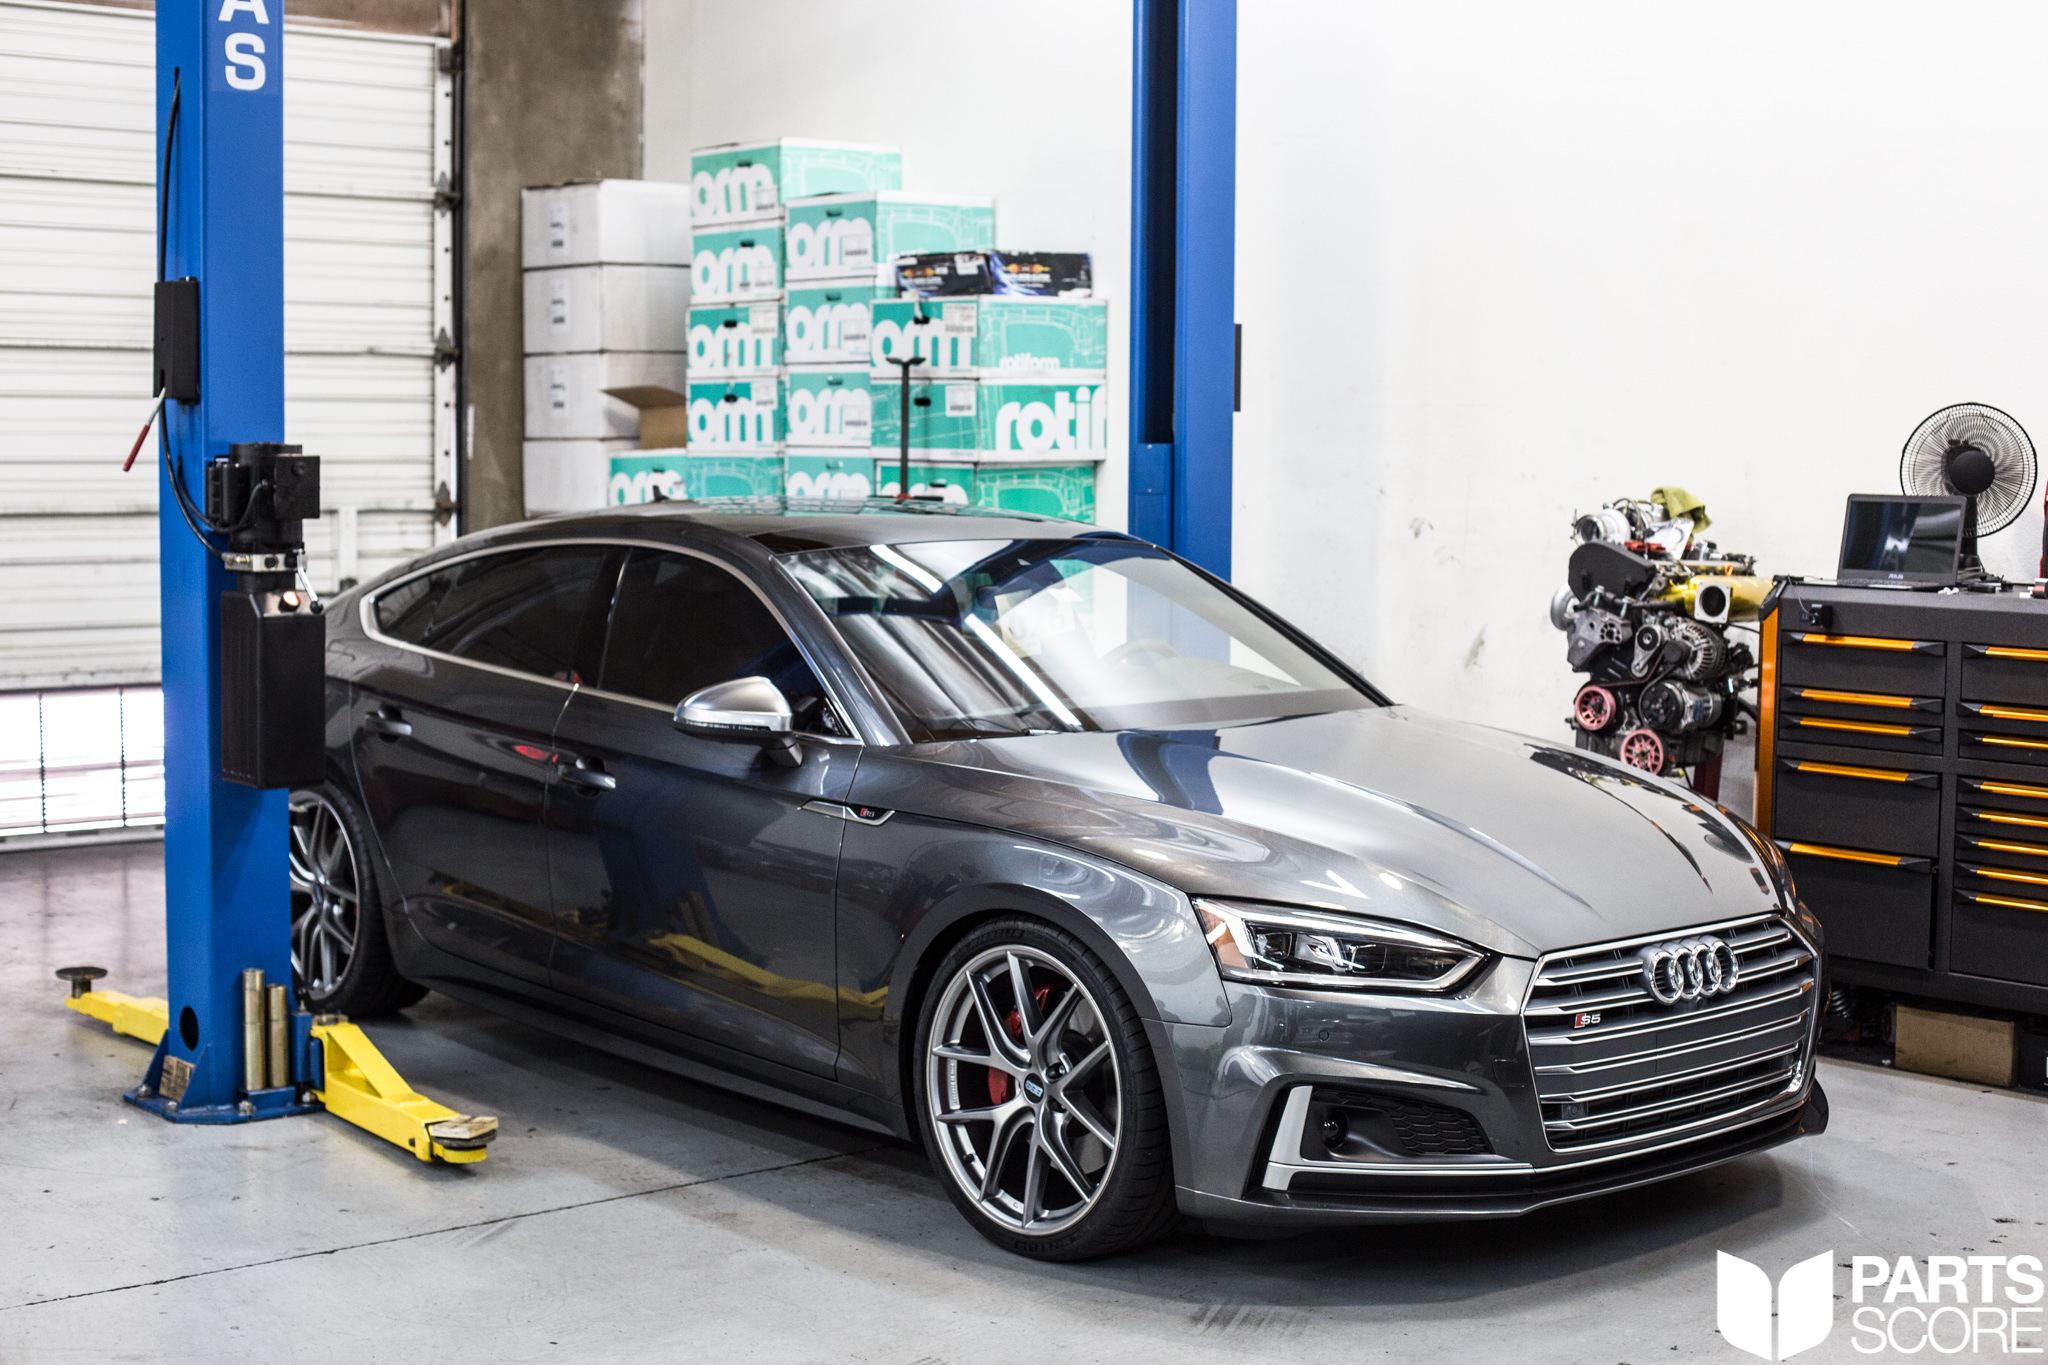 034, 034 motorsport, 034Motorsport, arizona, Audi, audi b9 s4, audi b9 s5, audi has kit, audi performance, audi s4, audi s5 has kit, audi s5 kw, b9 a4 grill, b9 a4 rs grill, b9 a4 wheels, b9 a5 grill, b9 a5 rs grill, b9 a5 wheels, b9 audi aftermarket wheels, b9 audi has kit, b9 audi hre wheels, b9 audi lowering, b9 audi mods, b9 audi springs, b9 audi wheel, b9 audi wheels, b9 bbs wheels, b9 h and r springs, b9 h r coilovers, b9 h&r springs, b9 has kit, b9 modifications, b9 performance, b9 s4, b9 s4 034, b9 s4 034 motorsports, b9 s4 apr, b9 s4 awe tuning, b9 s4 carbon fiber, b9 s4 downpipe, b9 s4 exhaust, b9 s4 flash, b9 s4 flash tune, b9 s4 front lip, b9 s4 giac, b9 s4 giac tune, b9 s4 grill, b9 s4 h and r coilovers, b9 s4 h r coilovers, b9 s4 h&r coilovers, b9 s4 h&r springs, b9 s4 has kit, b9 s4 intake, b9 s4 kw coilovers, b9 s4 kw has kit, b9 s4 kwv1, b9 s4 kwv2, b9 s4 kwv3, b9 s4 lip, b9 s4 milltek, b9 s4 modification, b9 s4 mods, b9 s4 navigation, b9 s4 ohlins, b9 s4 ohlins road and track, b9 s4 painted reflectors, b9 s4 performance, b9 s4 performance mods, b9 s4 power, b9 s4 spacers, b9 s4 spoiler, b9 s4 springs, b9 s4 tune, b9 s4 wheels, b9 s5, b9 s5 apr, b9 s5 awe tuning, b9 s5 carbon fiber, b9 s5 downpipe, b9 s5 exhaust, b9 s5 front lip, b9 s5 giac, b9 s5 grill, b9 s5 h&r springs, b9 s5 has kit, b9 s5 intake, b9 s5 kw has kit, b9 s5 milltek, b9 s5 mods, b9 s5 painted reflectors, b9 s5 performance, b9 s5 power, b9 s5 sportback wheels, b9 s5 springs, b9 s5 wheels, b9 suspension b9 audi suspension, b9 wheels, BBS, bbs usa, bbs wheels, bbs wheels b9, giac flash, giac tune, giactuned, glacier white, h and r coilovers b9, has kit, height adjustable spring kit, kw coilovers b9, magma red, mesh, mesh grill, michelin tires, o34, o34 motorsport, o34motorsport, parts score, rs grill, rs4 grill, rs4 s4 grill, s4 b9 cts turbo, scottsdale, strut bar, strut tower, strut tower brace, subframe insert, toyo tires